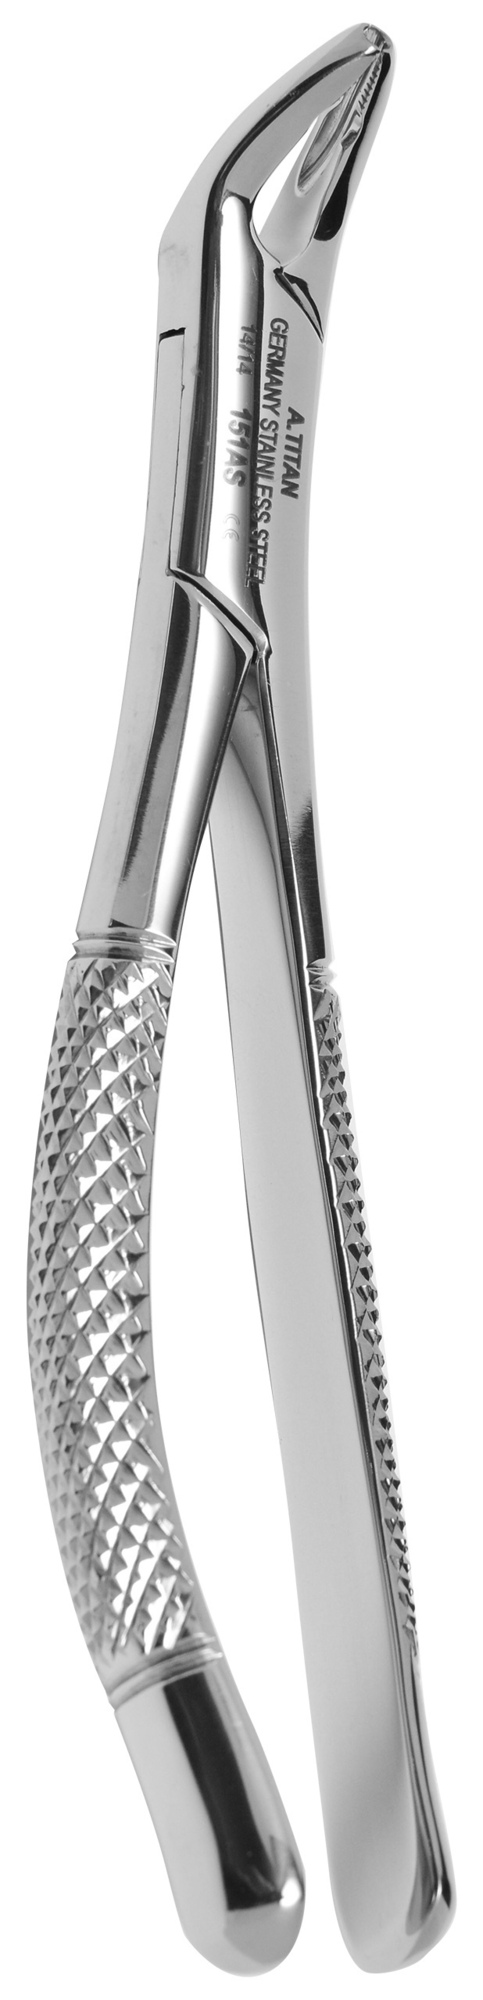 Lower universal pedodontic forceps with notch   151 as xlarge